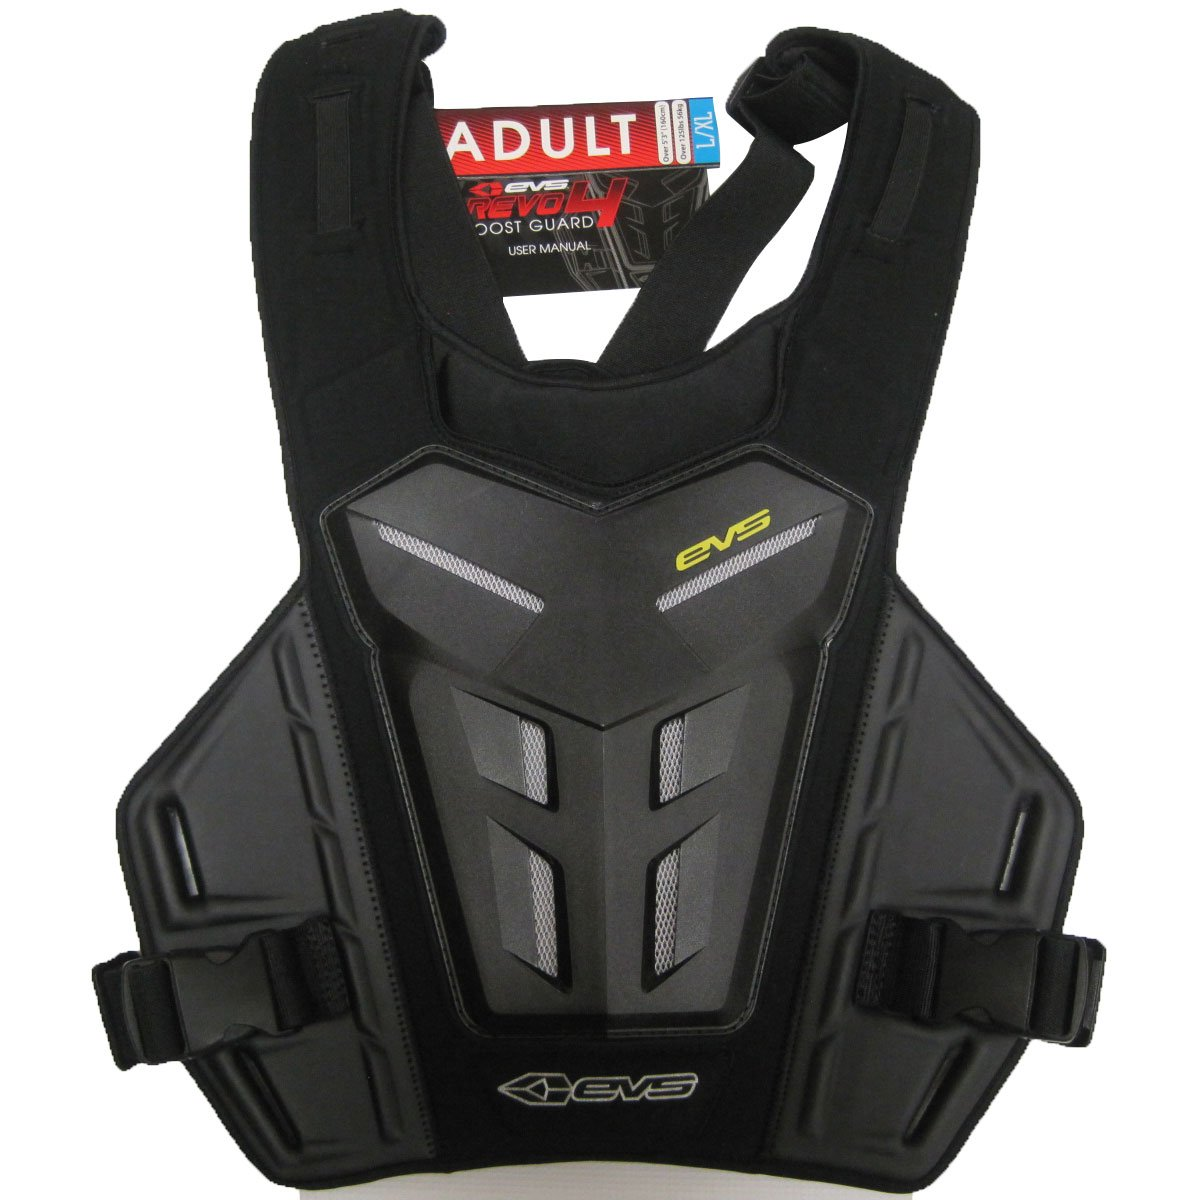 EVS Revolution 4 Adult Roost Guard Motocross/Off-Road/Dirt Bike Motorcycle Body Armor - Black/Grey/One Size